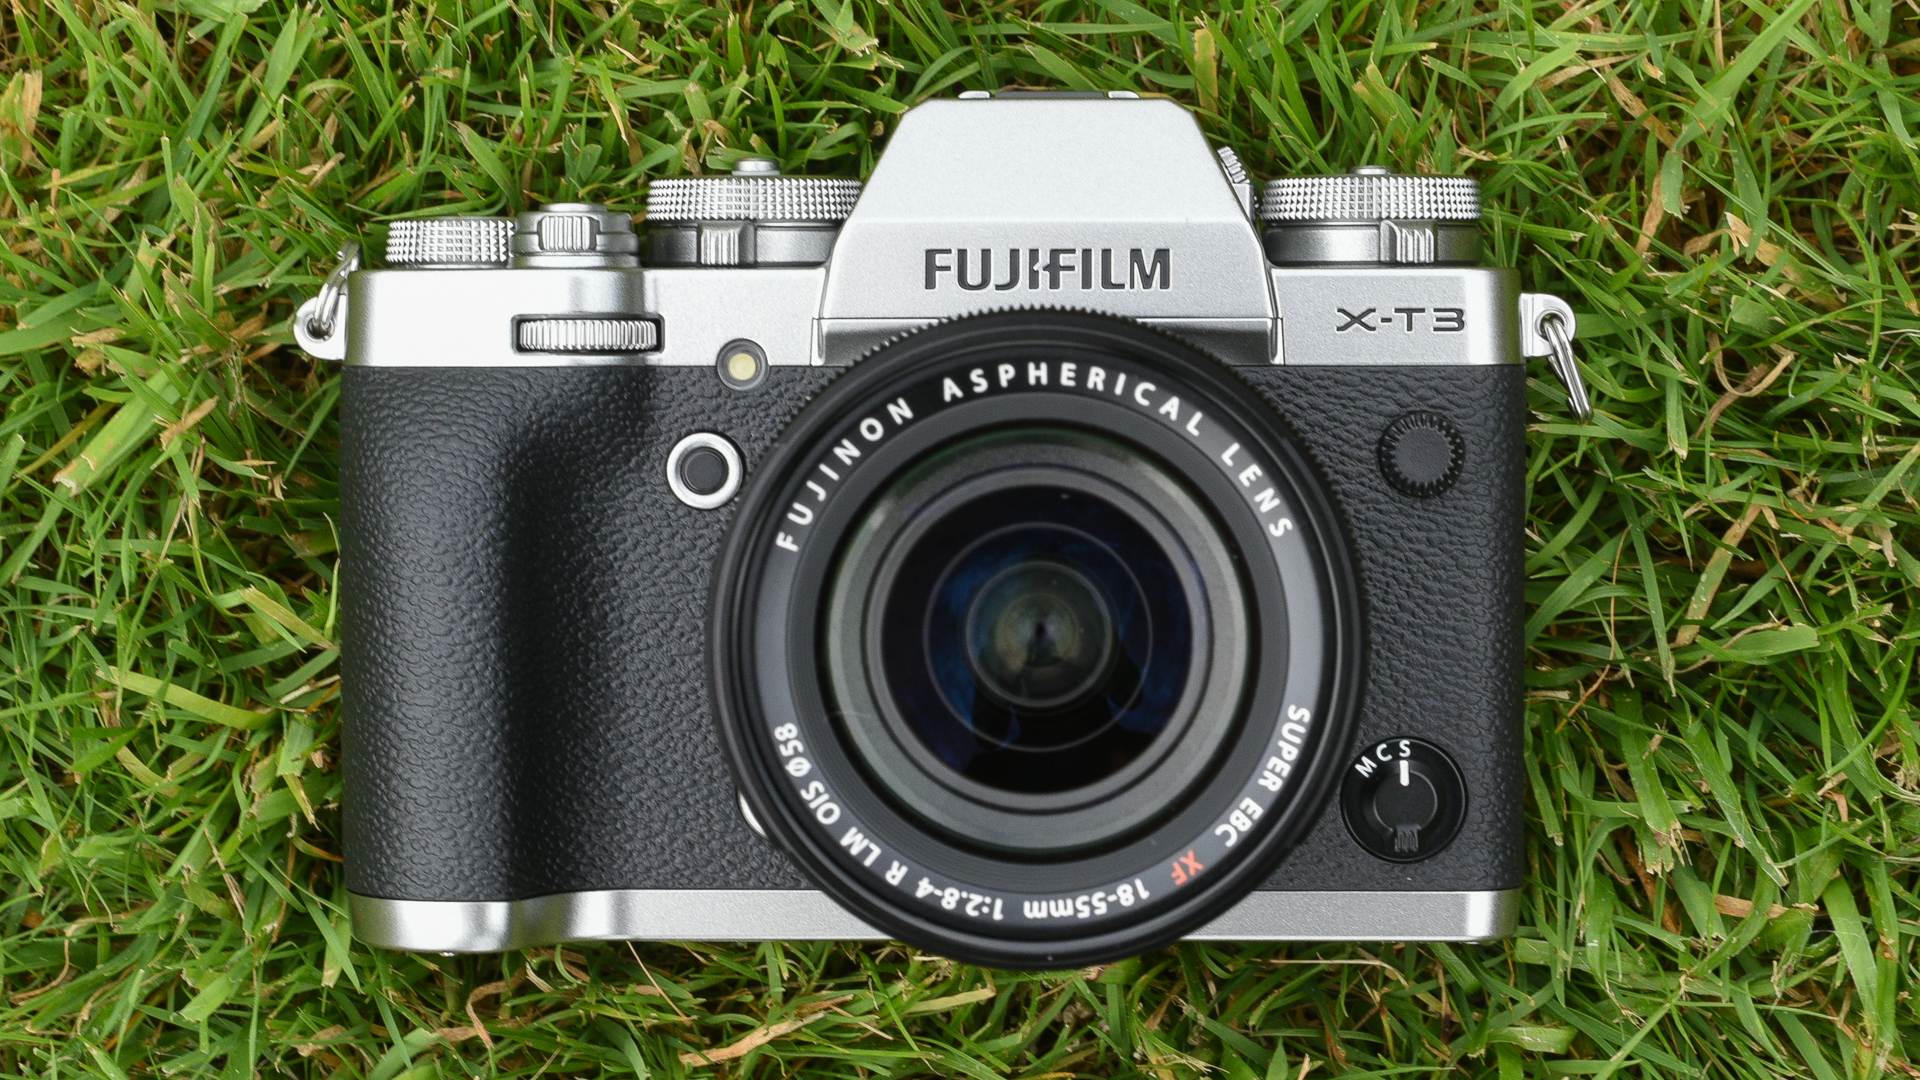 Best mirrorless camera 2019: 10 top models to suit every